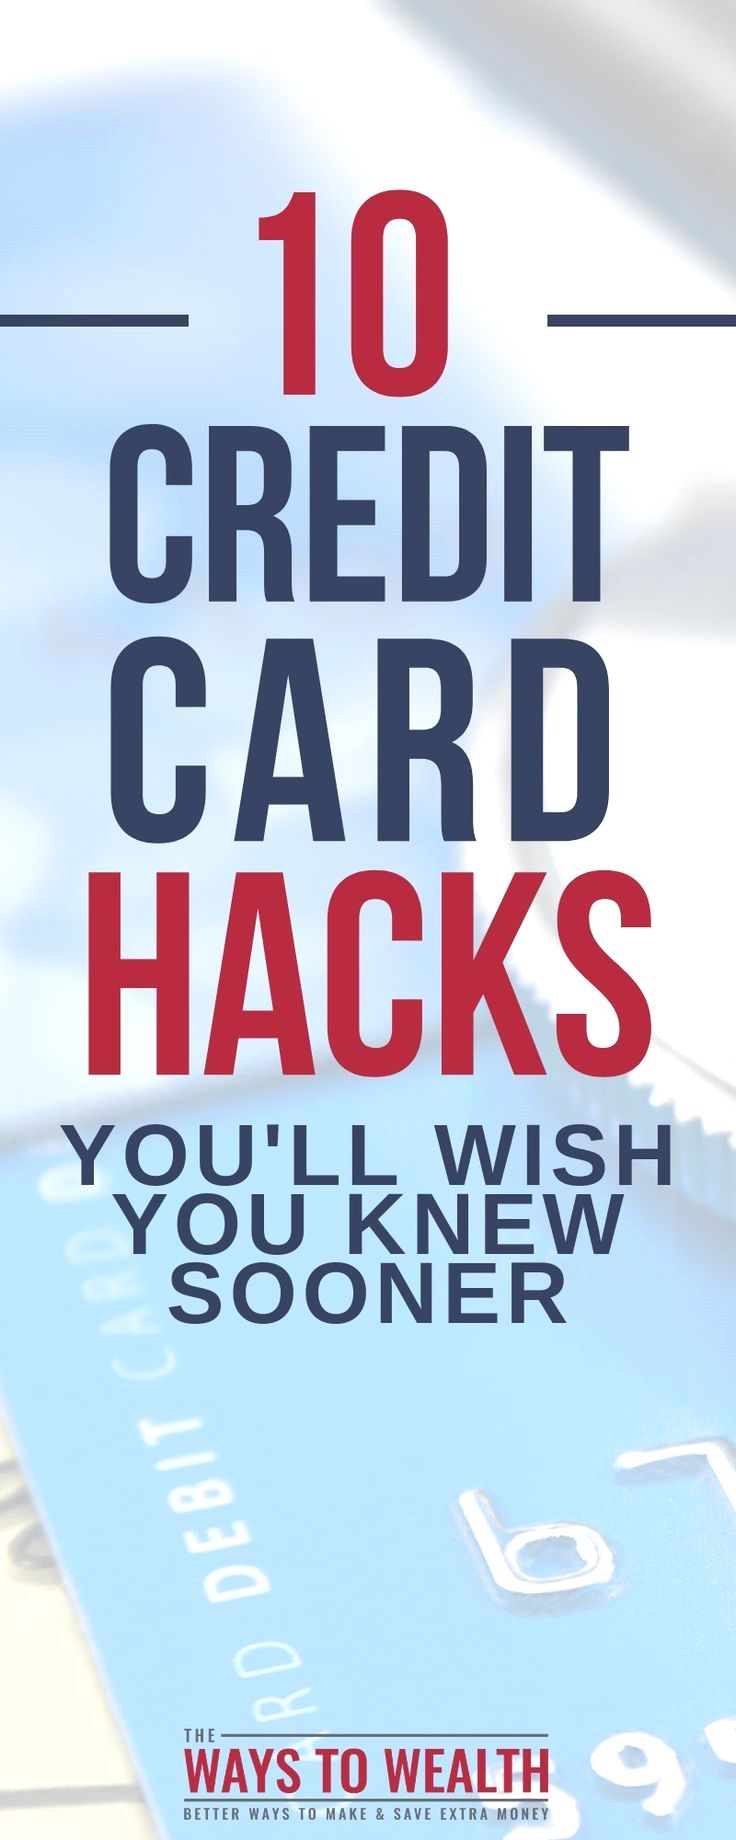 How Credit Cards Work: Pros, Cons, & 10 Tips To Using Wisely